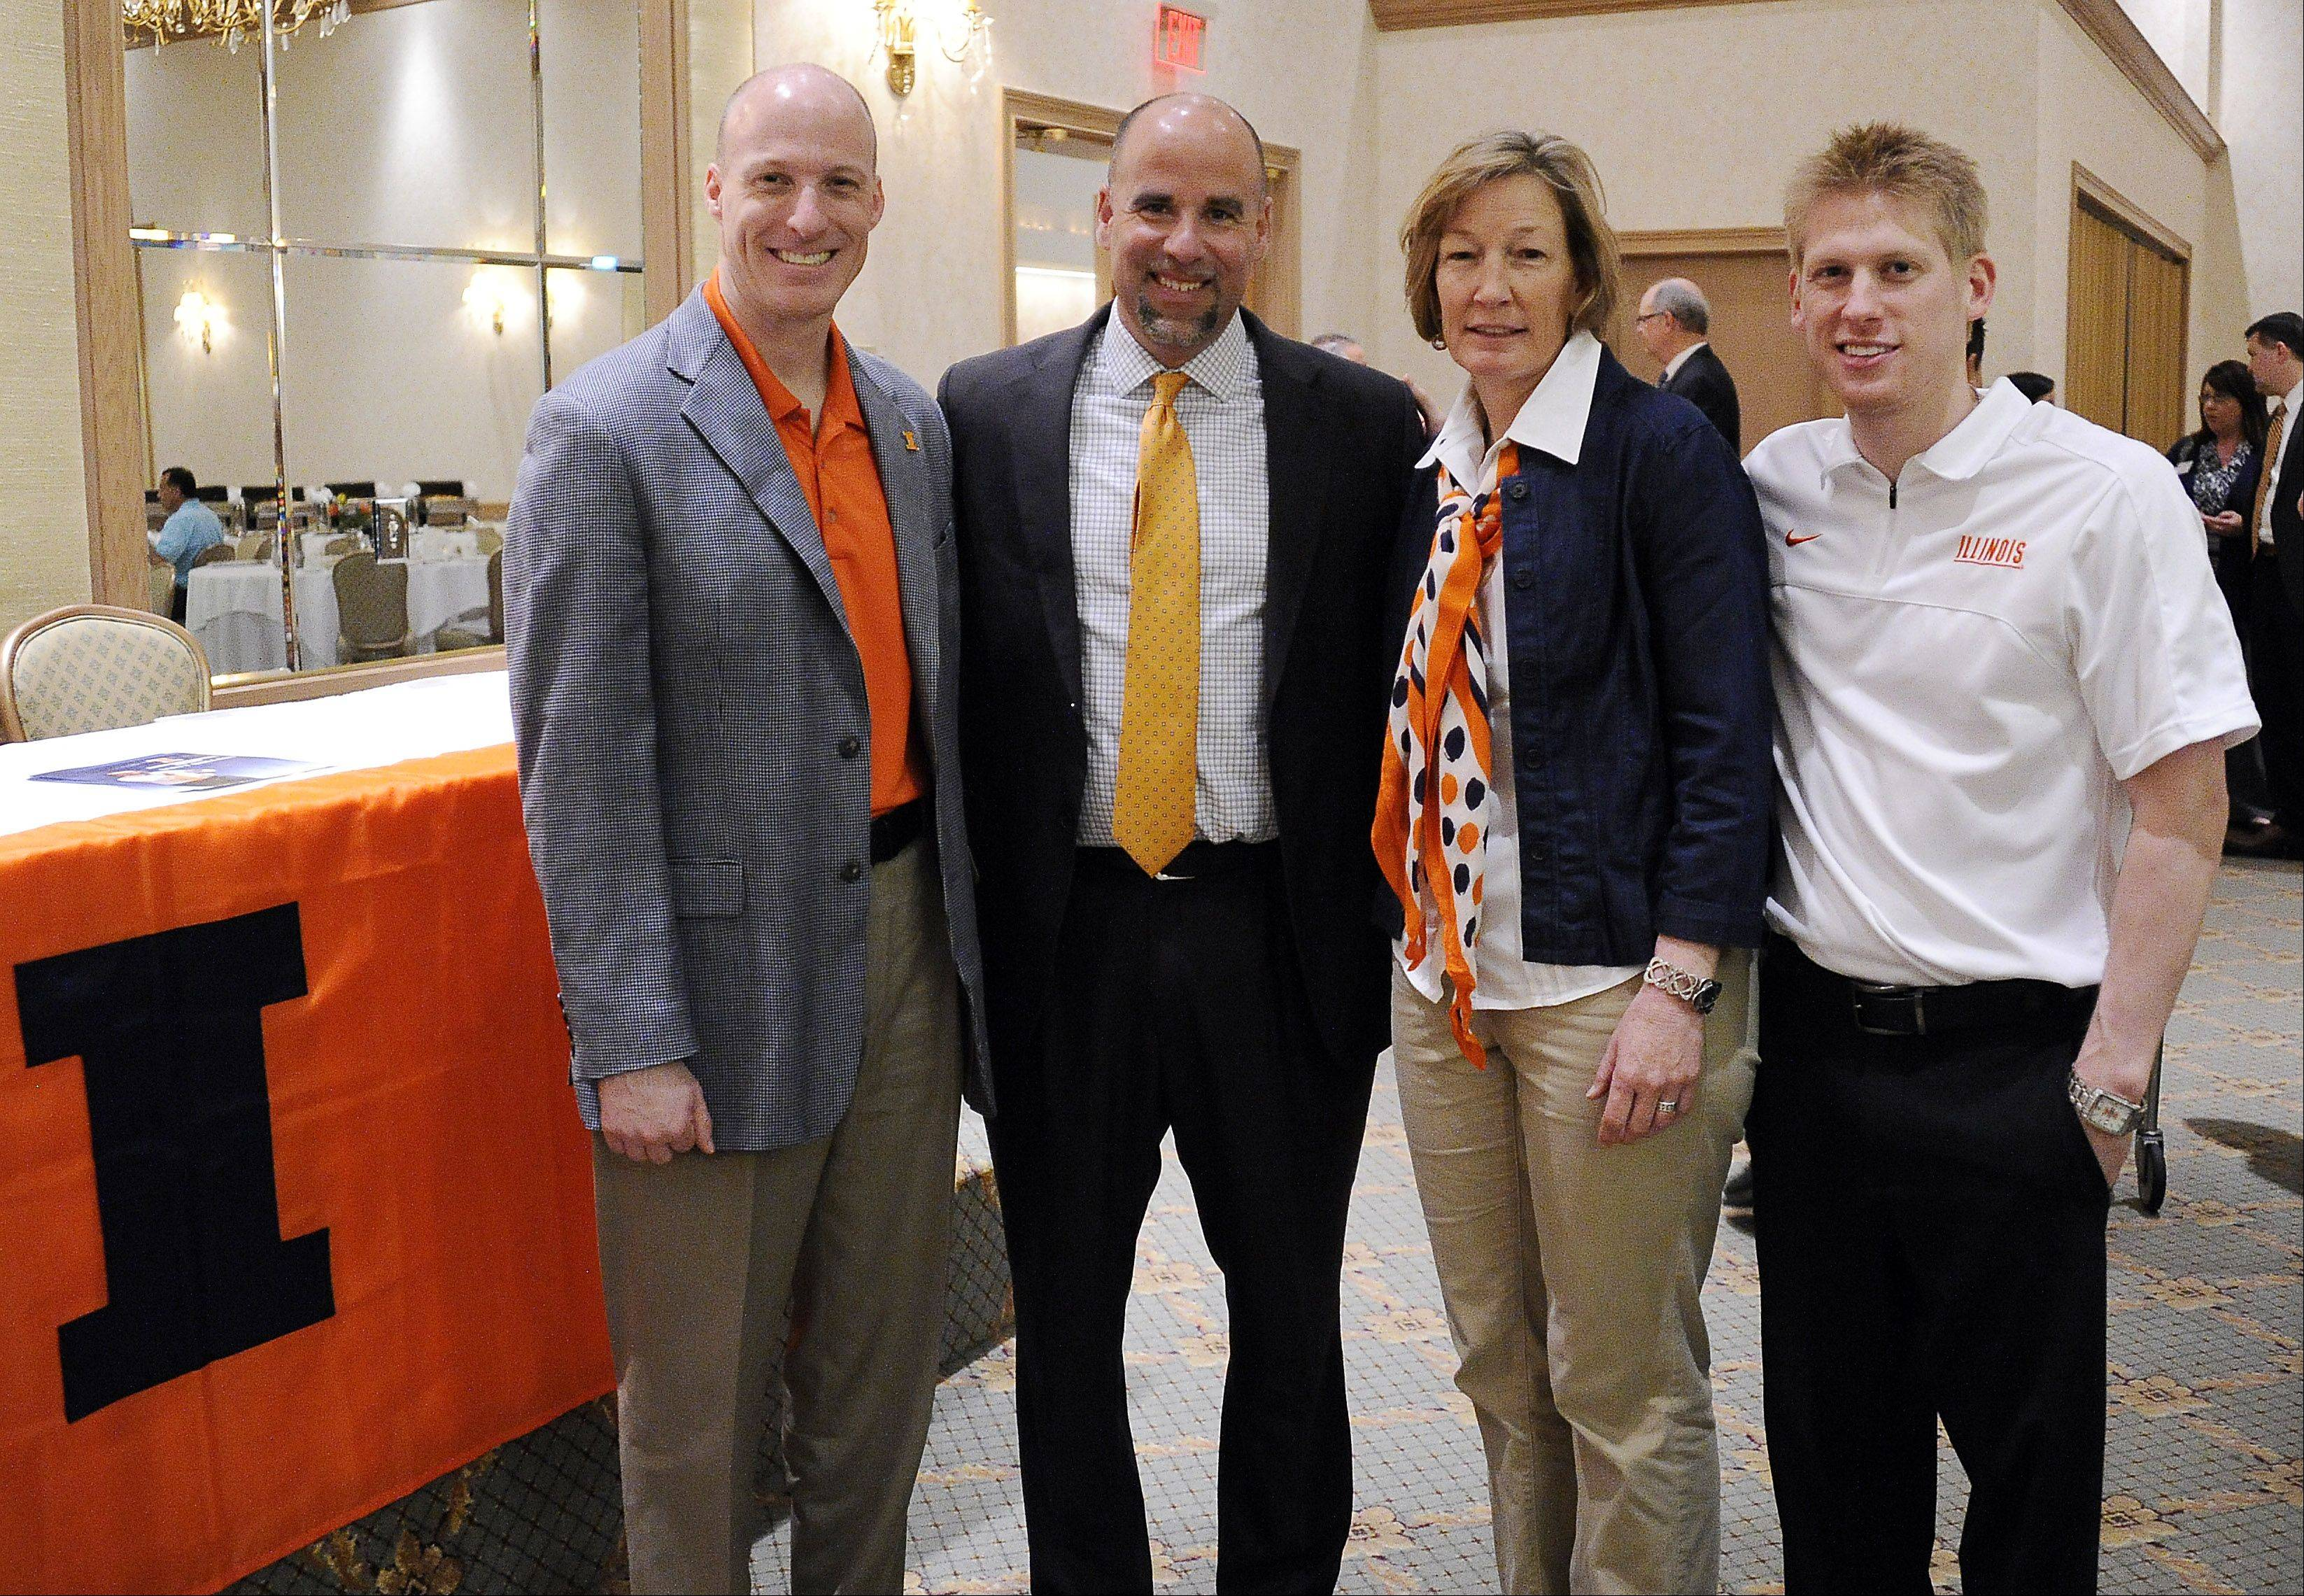 University of Illinois coaches John Groce (men's basketball), Matt Bollant (women's basketball), Janet Rayfield (women's soccer), and Justin Spring (men's gymnastics) stopped to meet with Daily Herald premium subscribers Wednesday as part of the annual Illini Caravan.